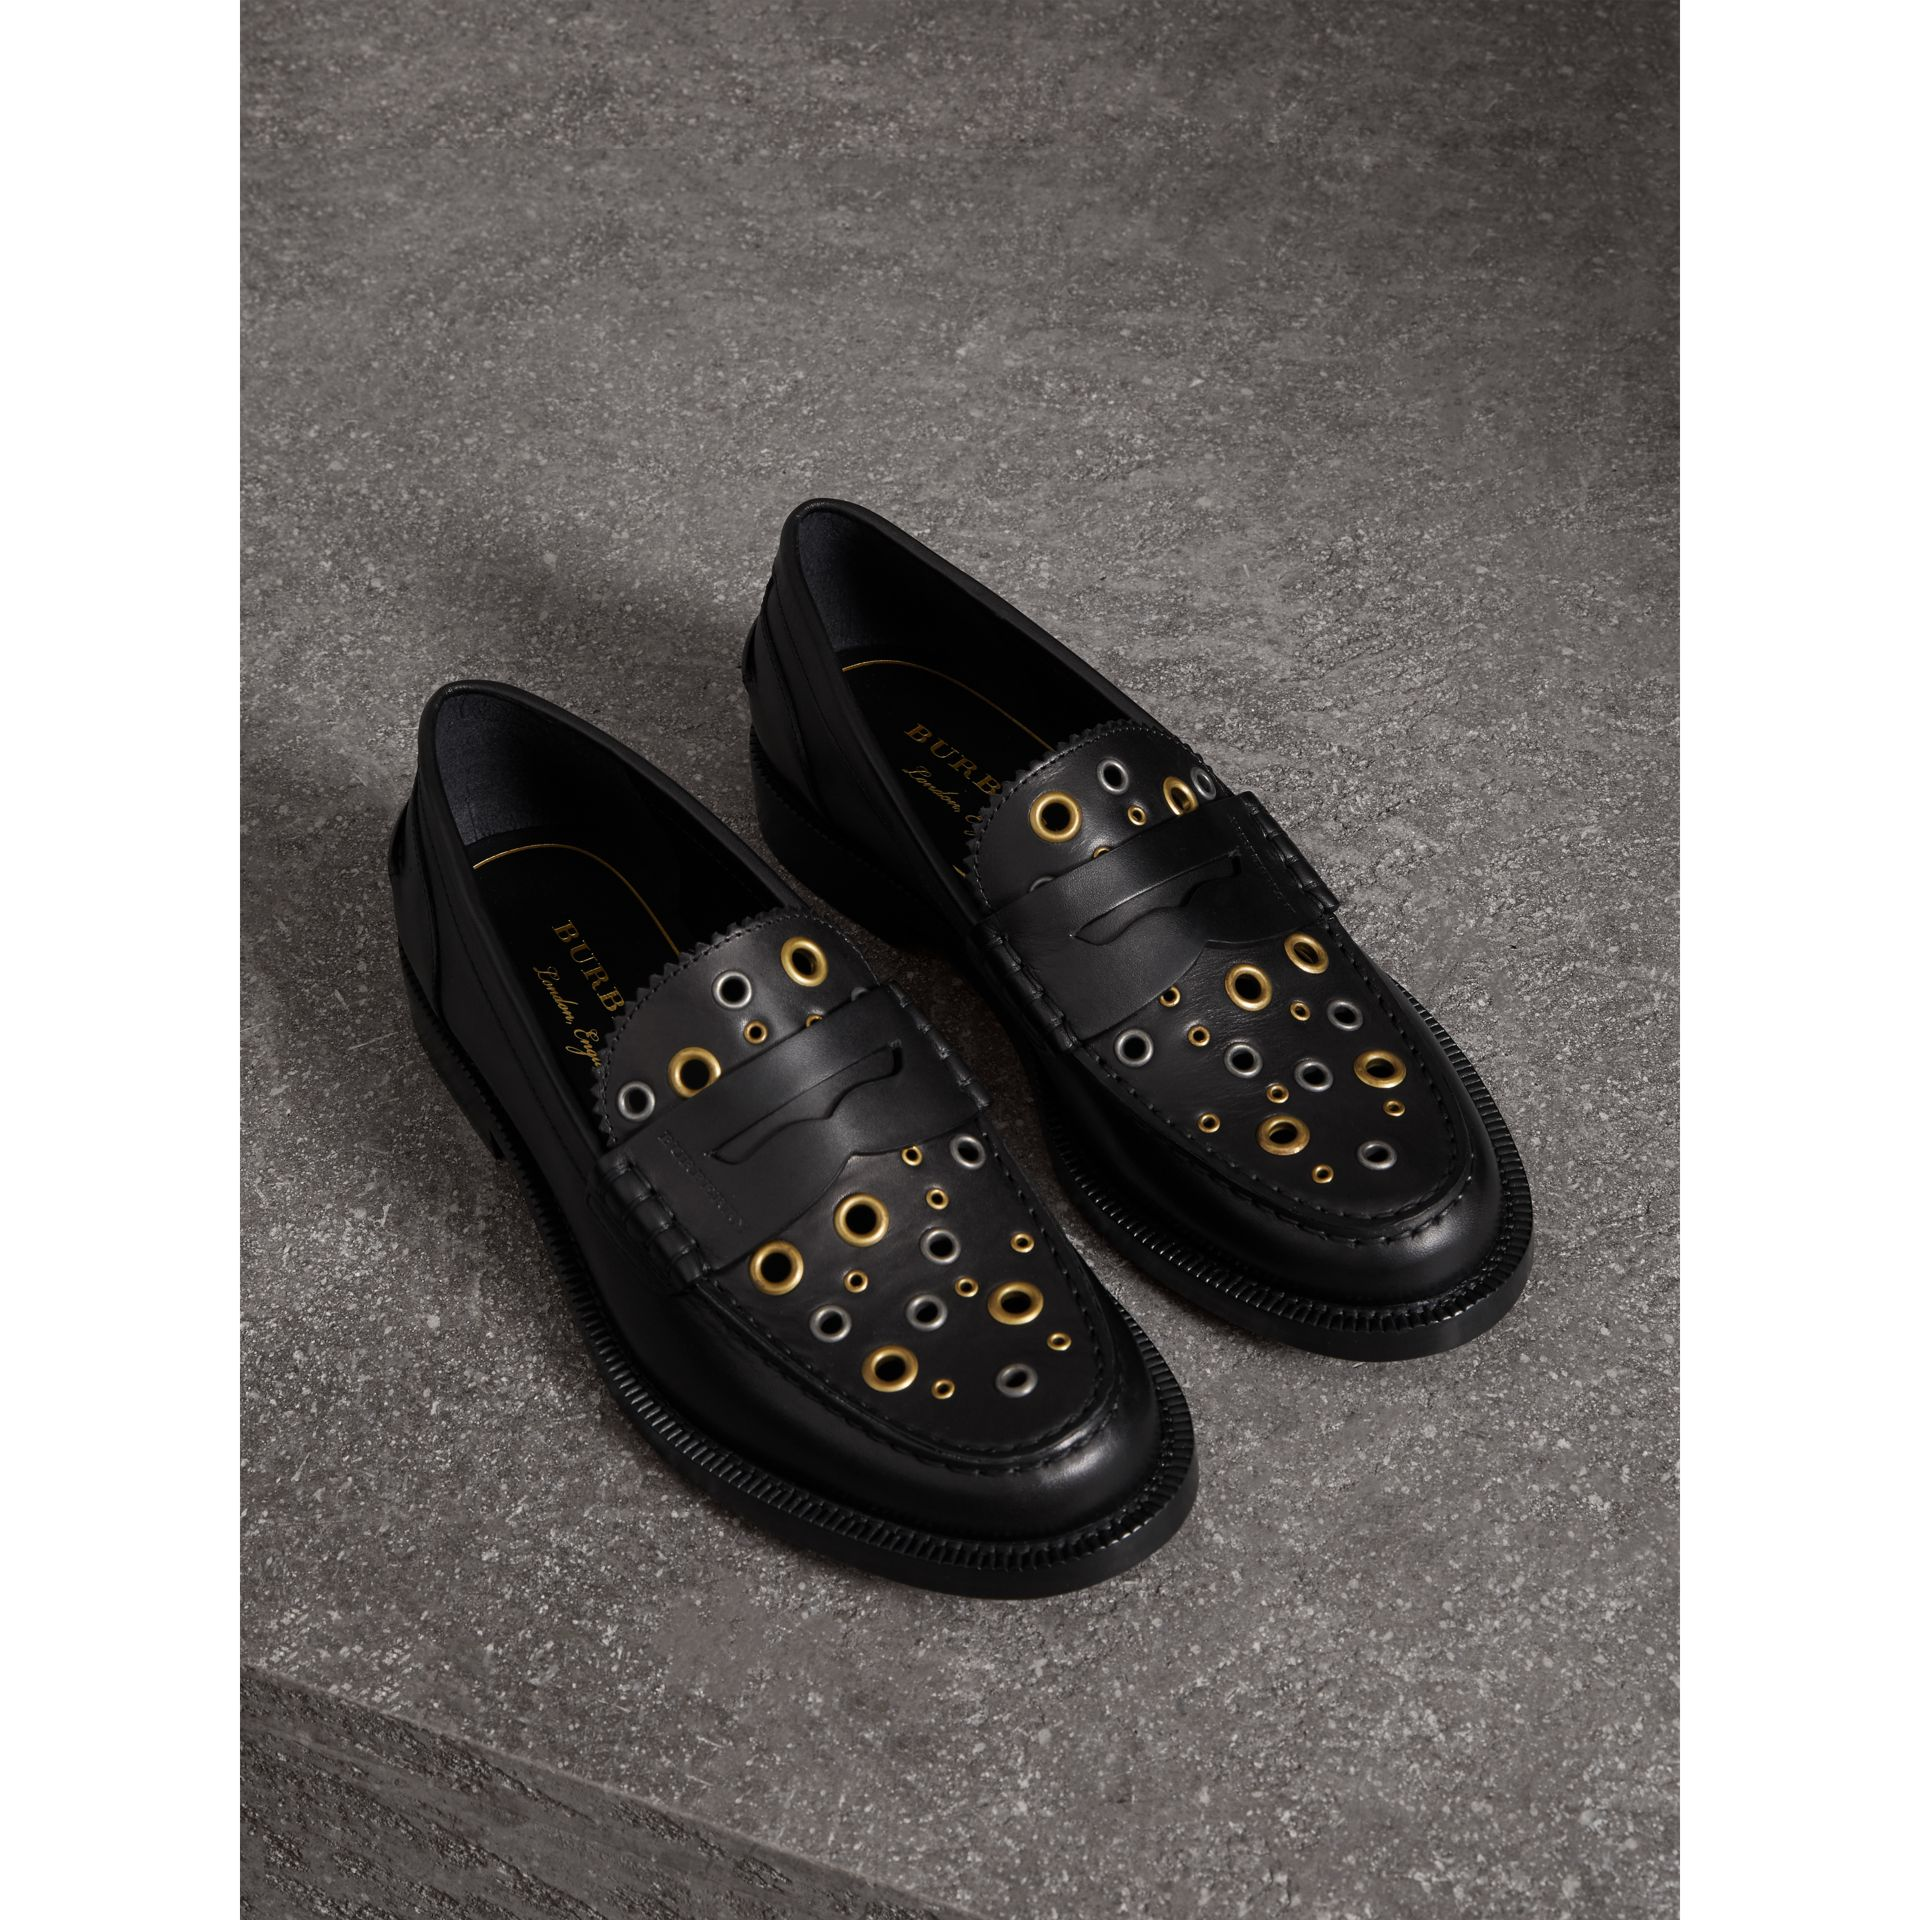 e30d9b75b528 BURBERRY EYELET DETAIL LEATHER PENNY LOAFERS